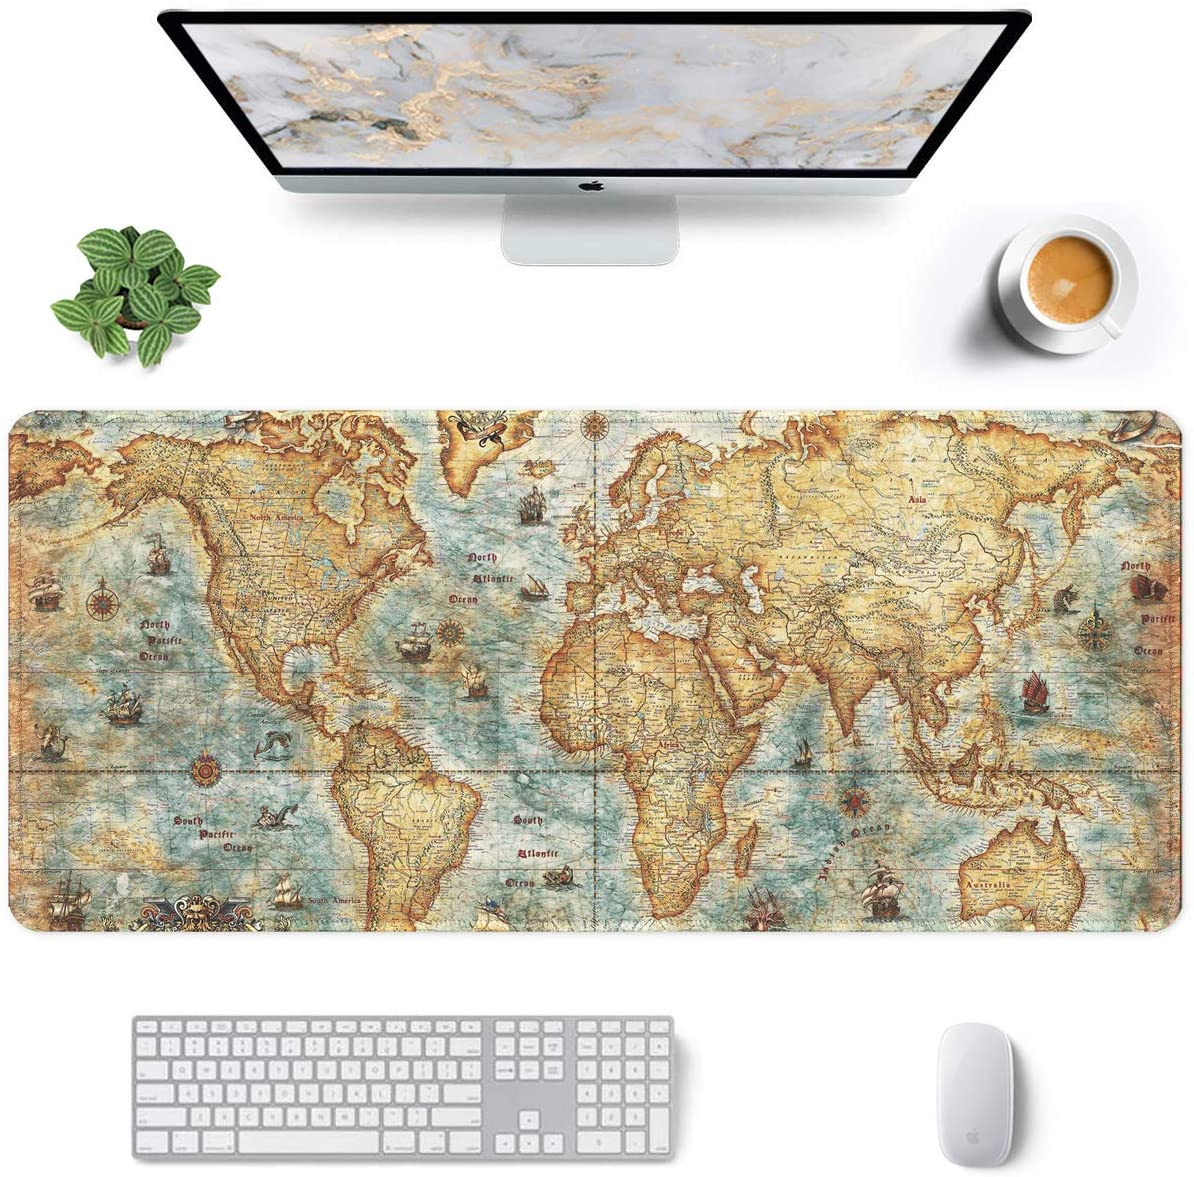 "Auhoahsil Large Mouse Pad, Full Desk XXL Extended Gaming Mouse Pad 35"" X 15"", Waterproof Desktop Mat with Stitched Edge, Non-Slip Laptop Computer Keyboard Mousepad for Office & Home, World Map Design"